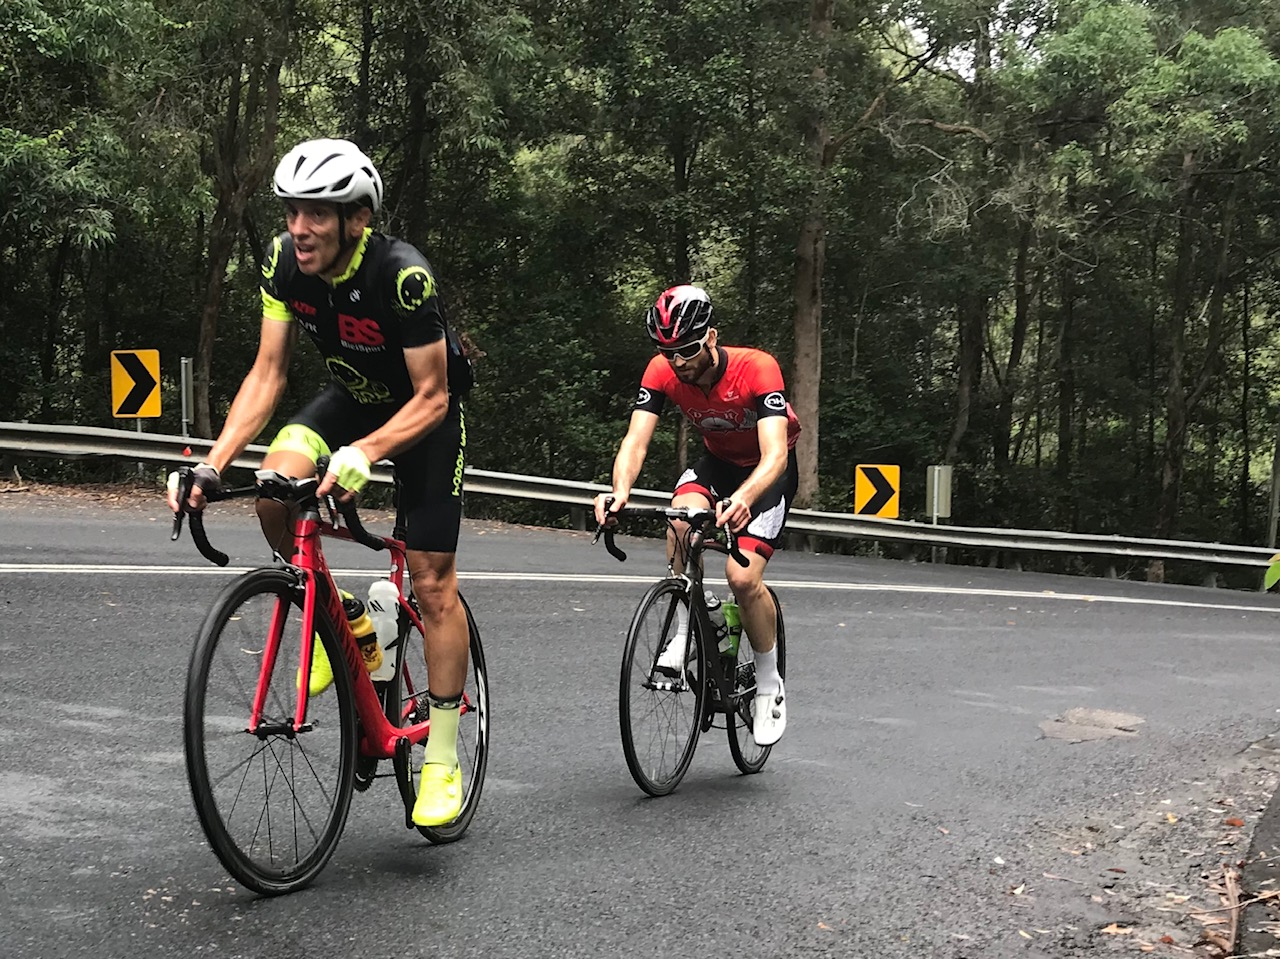 BiciSport Wisemans Loop @ 24 Feb - Randolph Baral (BiciSport Happy Wheels) on the steep 10% section of the Alpe del la Mangrove Mountain climb